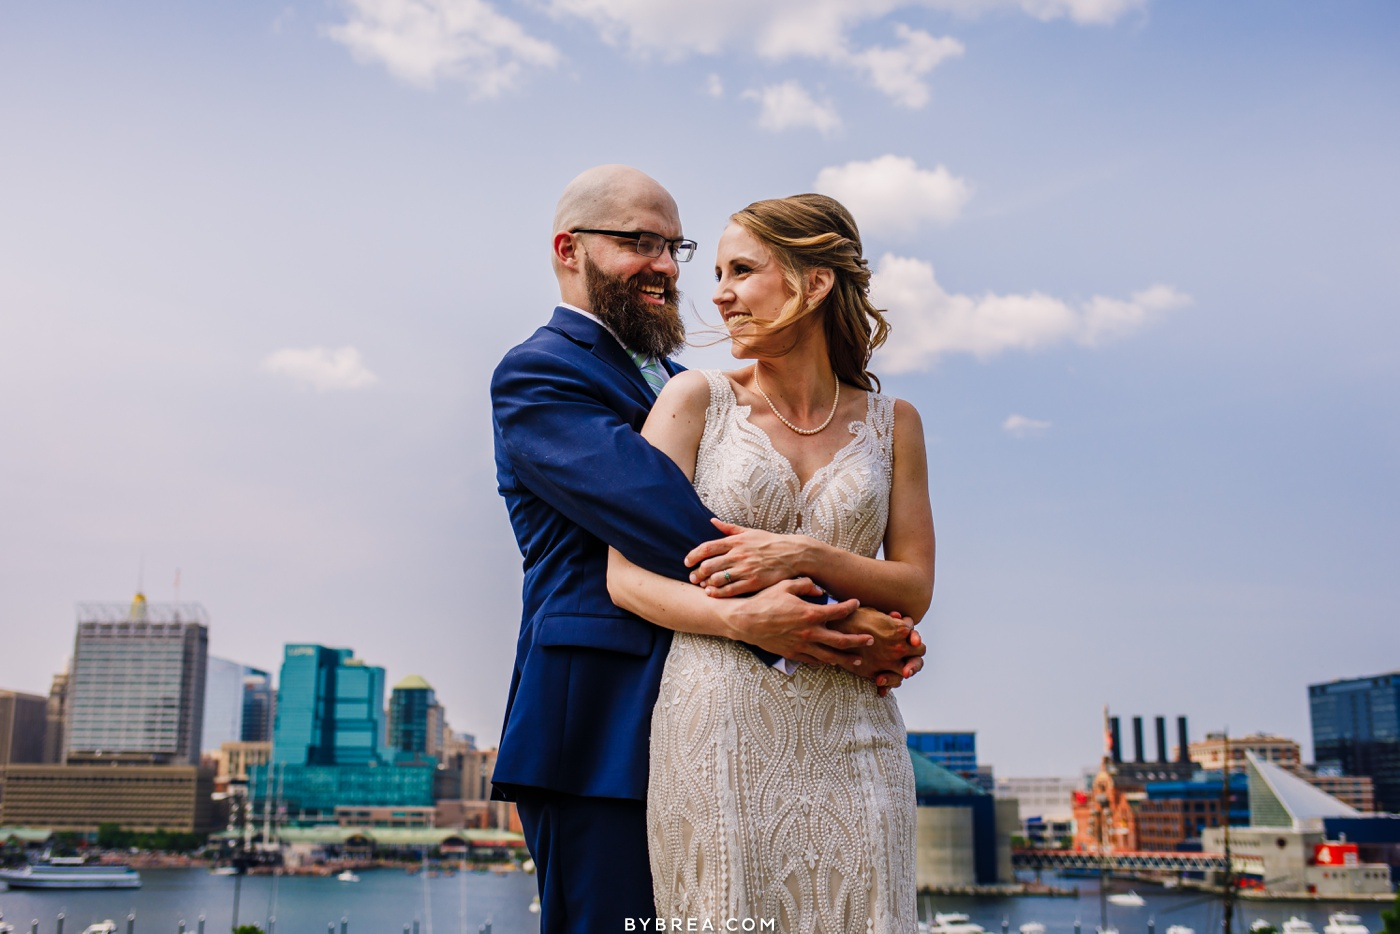 Event planned by Baltimore wedding planner Erin Powell with 1423 Events